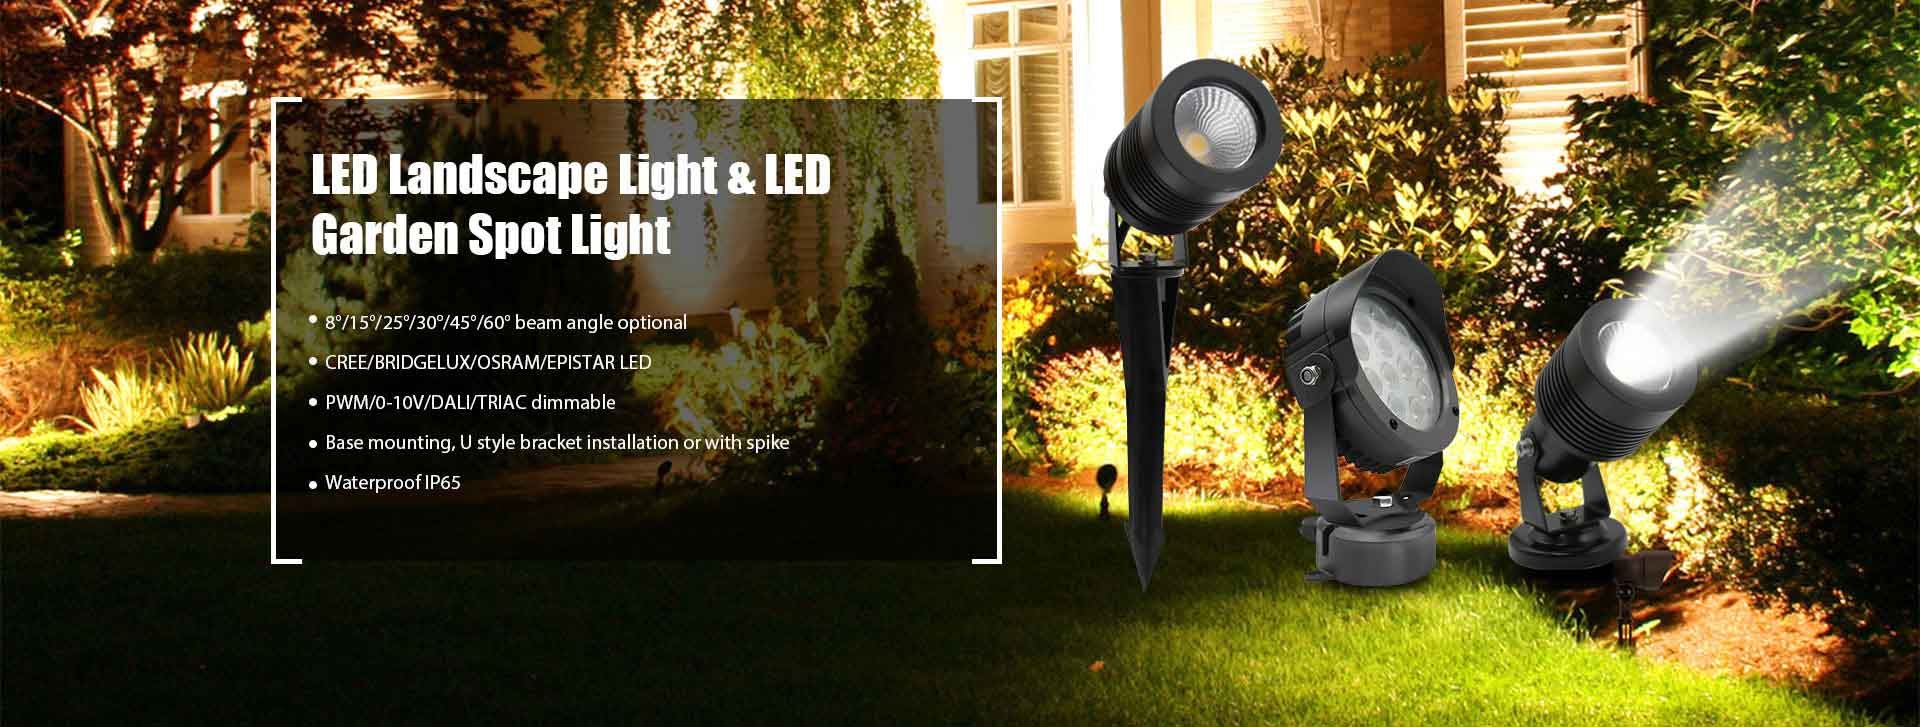 LED Landscape Spot Light